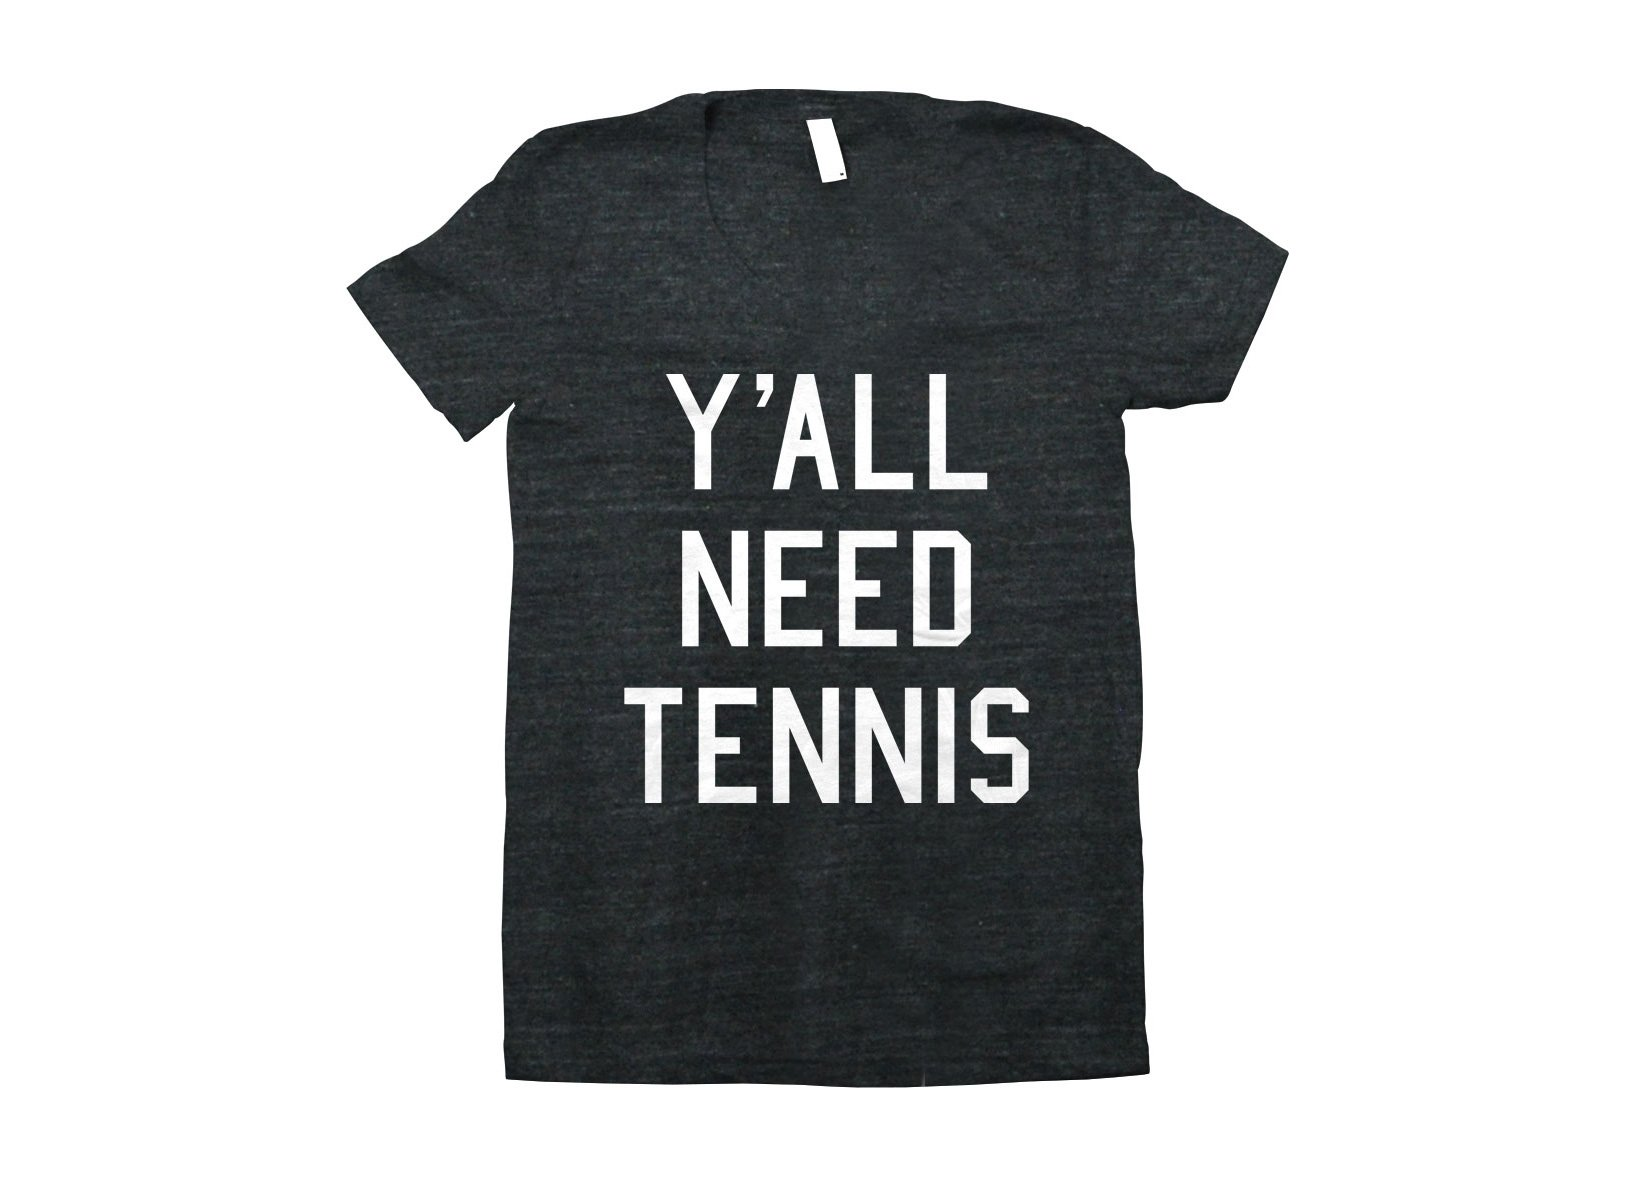 Y'all Need Tennis on Tanks T-Shirt